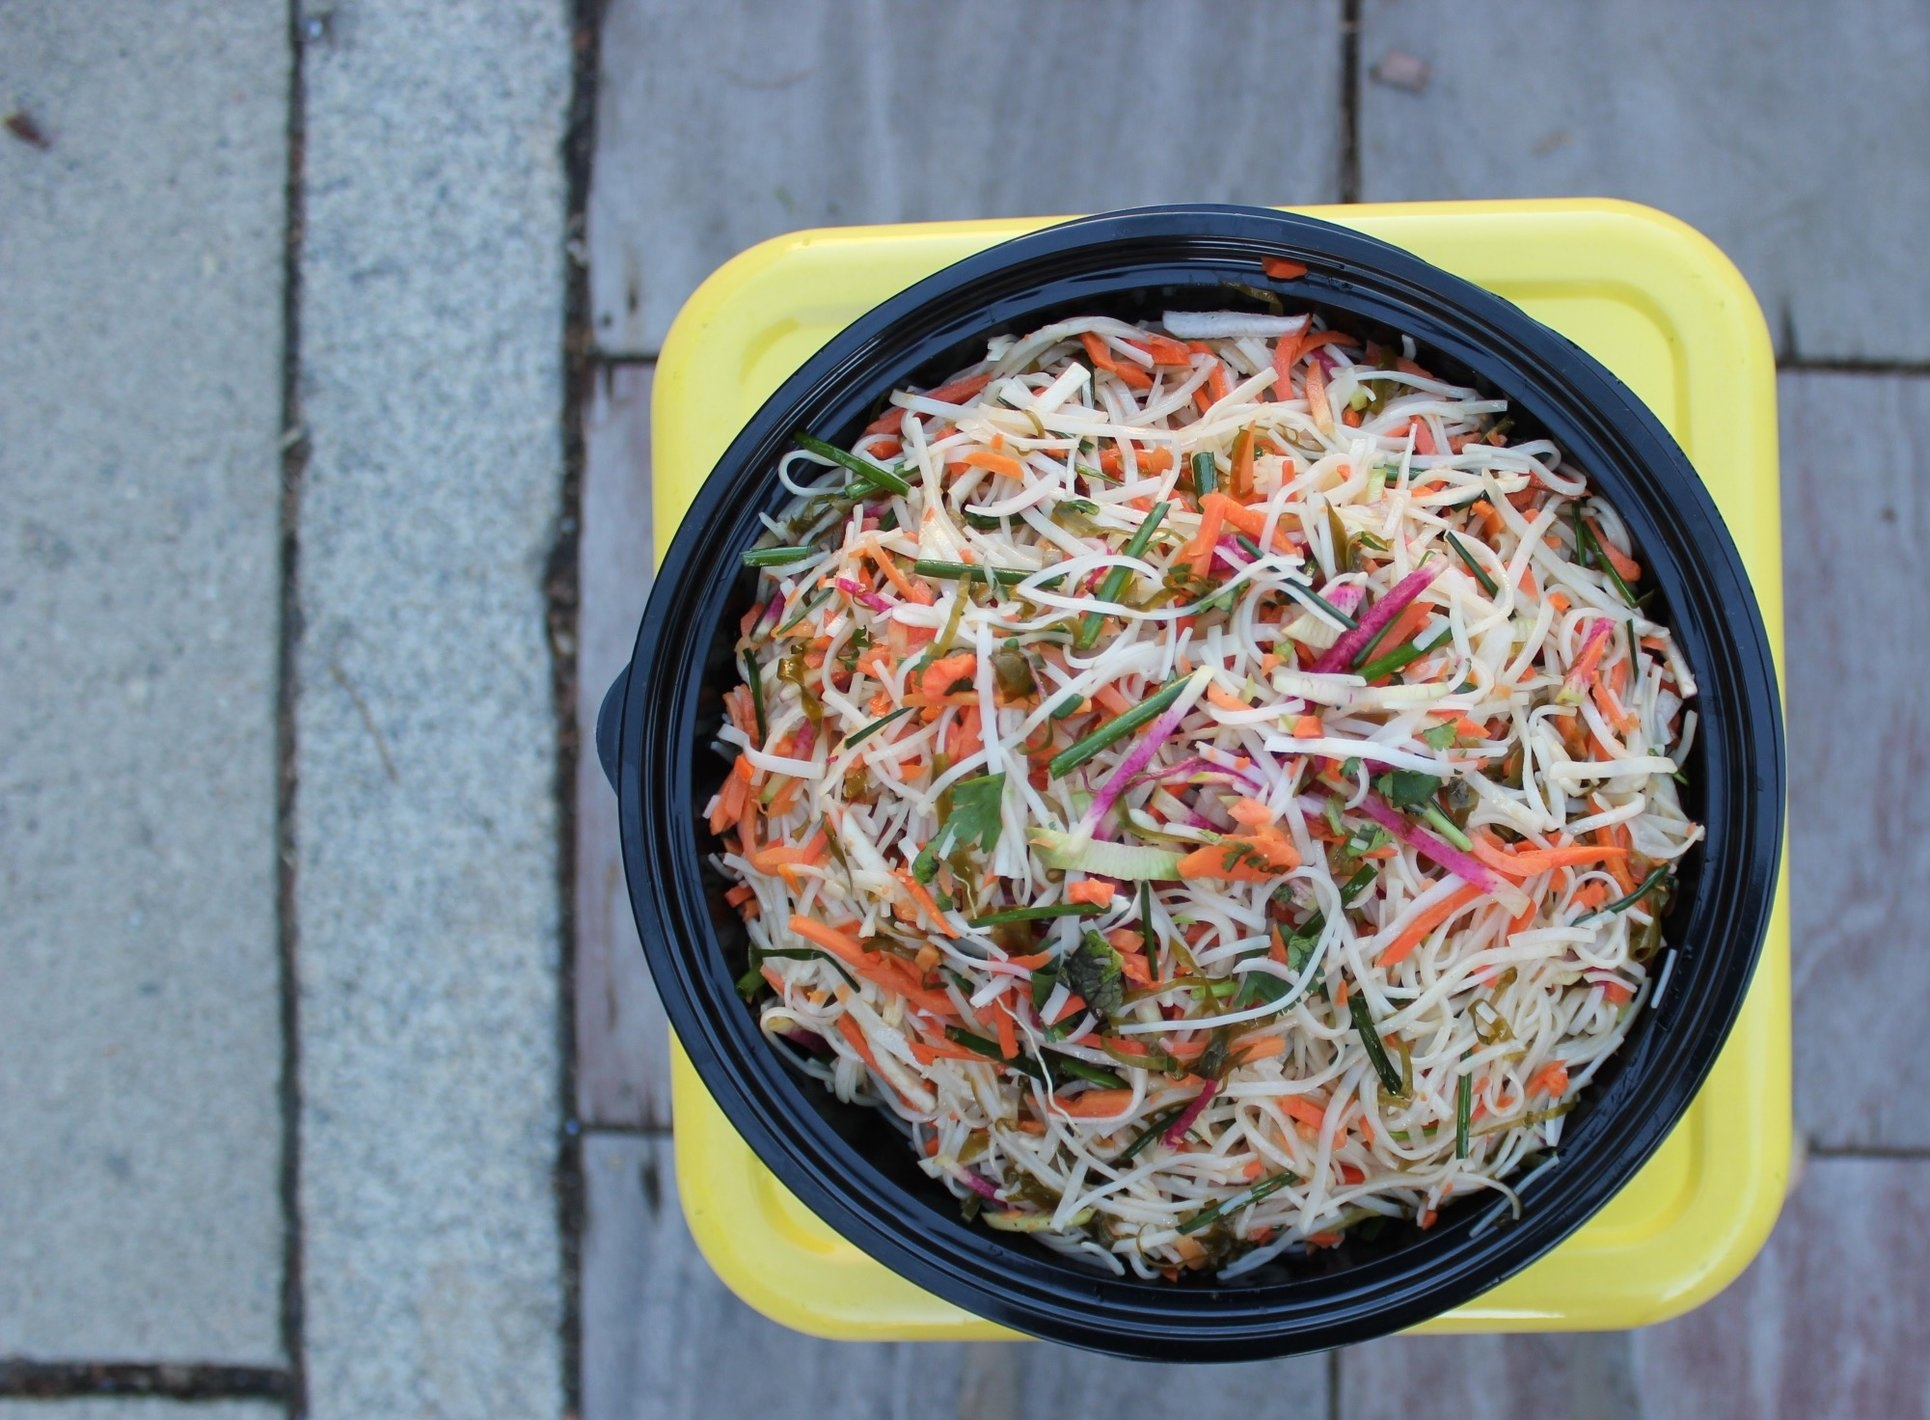 It's hard to say goodbye. Let us make it easier. - Place your next catering order before Saturday, March 17, 2018 to receive a FREE Maple Sesame Noodle Salad before it comes off the menu. Limit 1 per guest, $300 min order.